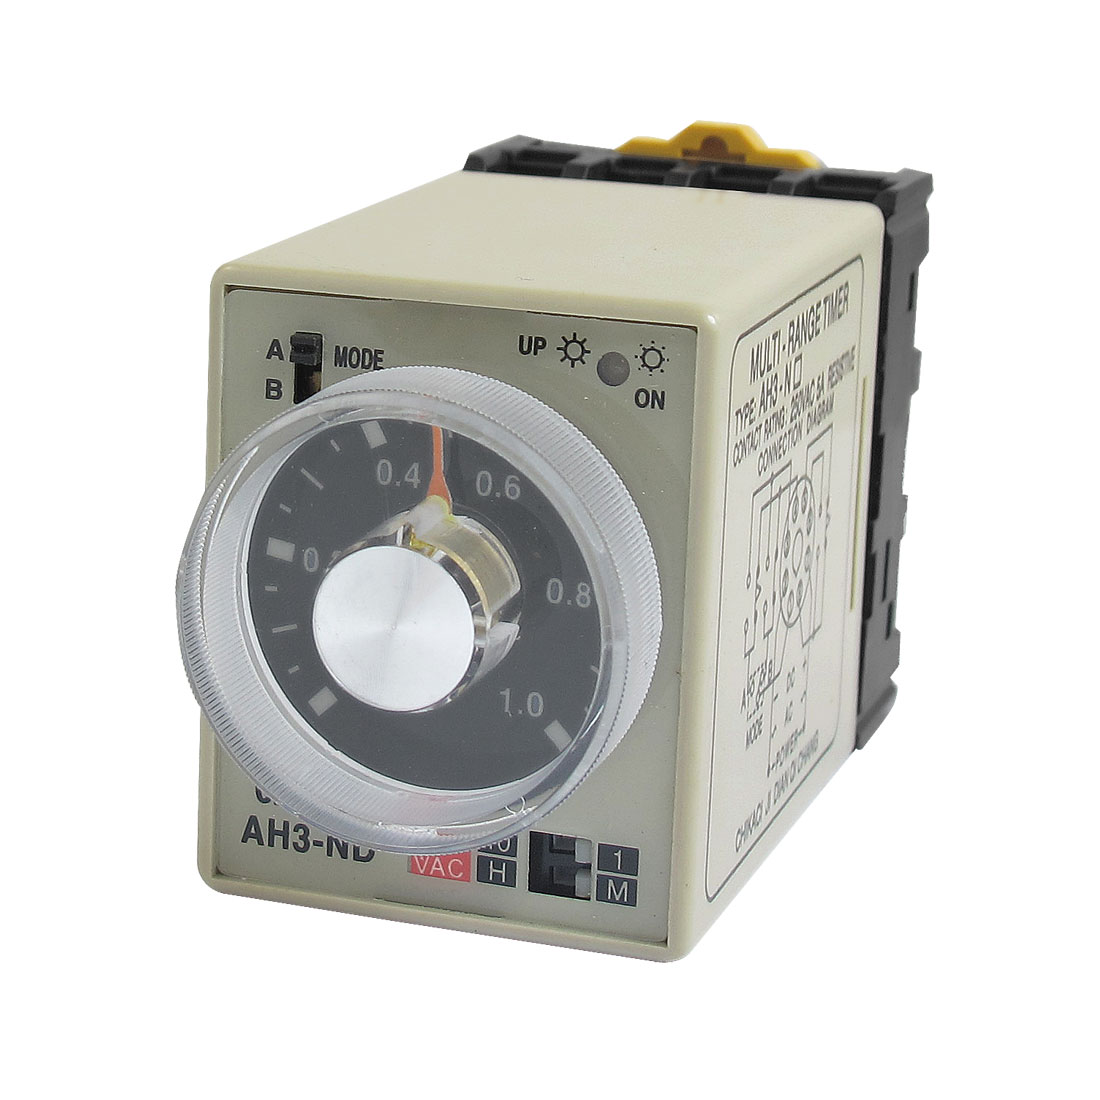 AC 220V AH3-ND 8 Pins 1M-10H 0-1M 0-10Hours Power on Delay Time Relay w Socket